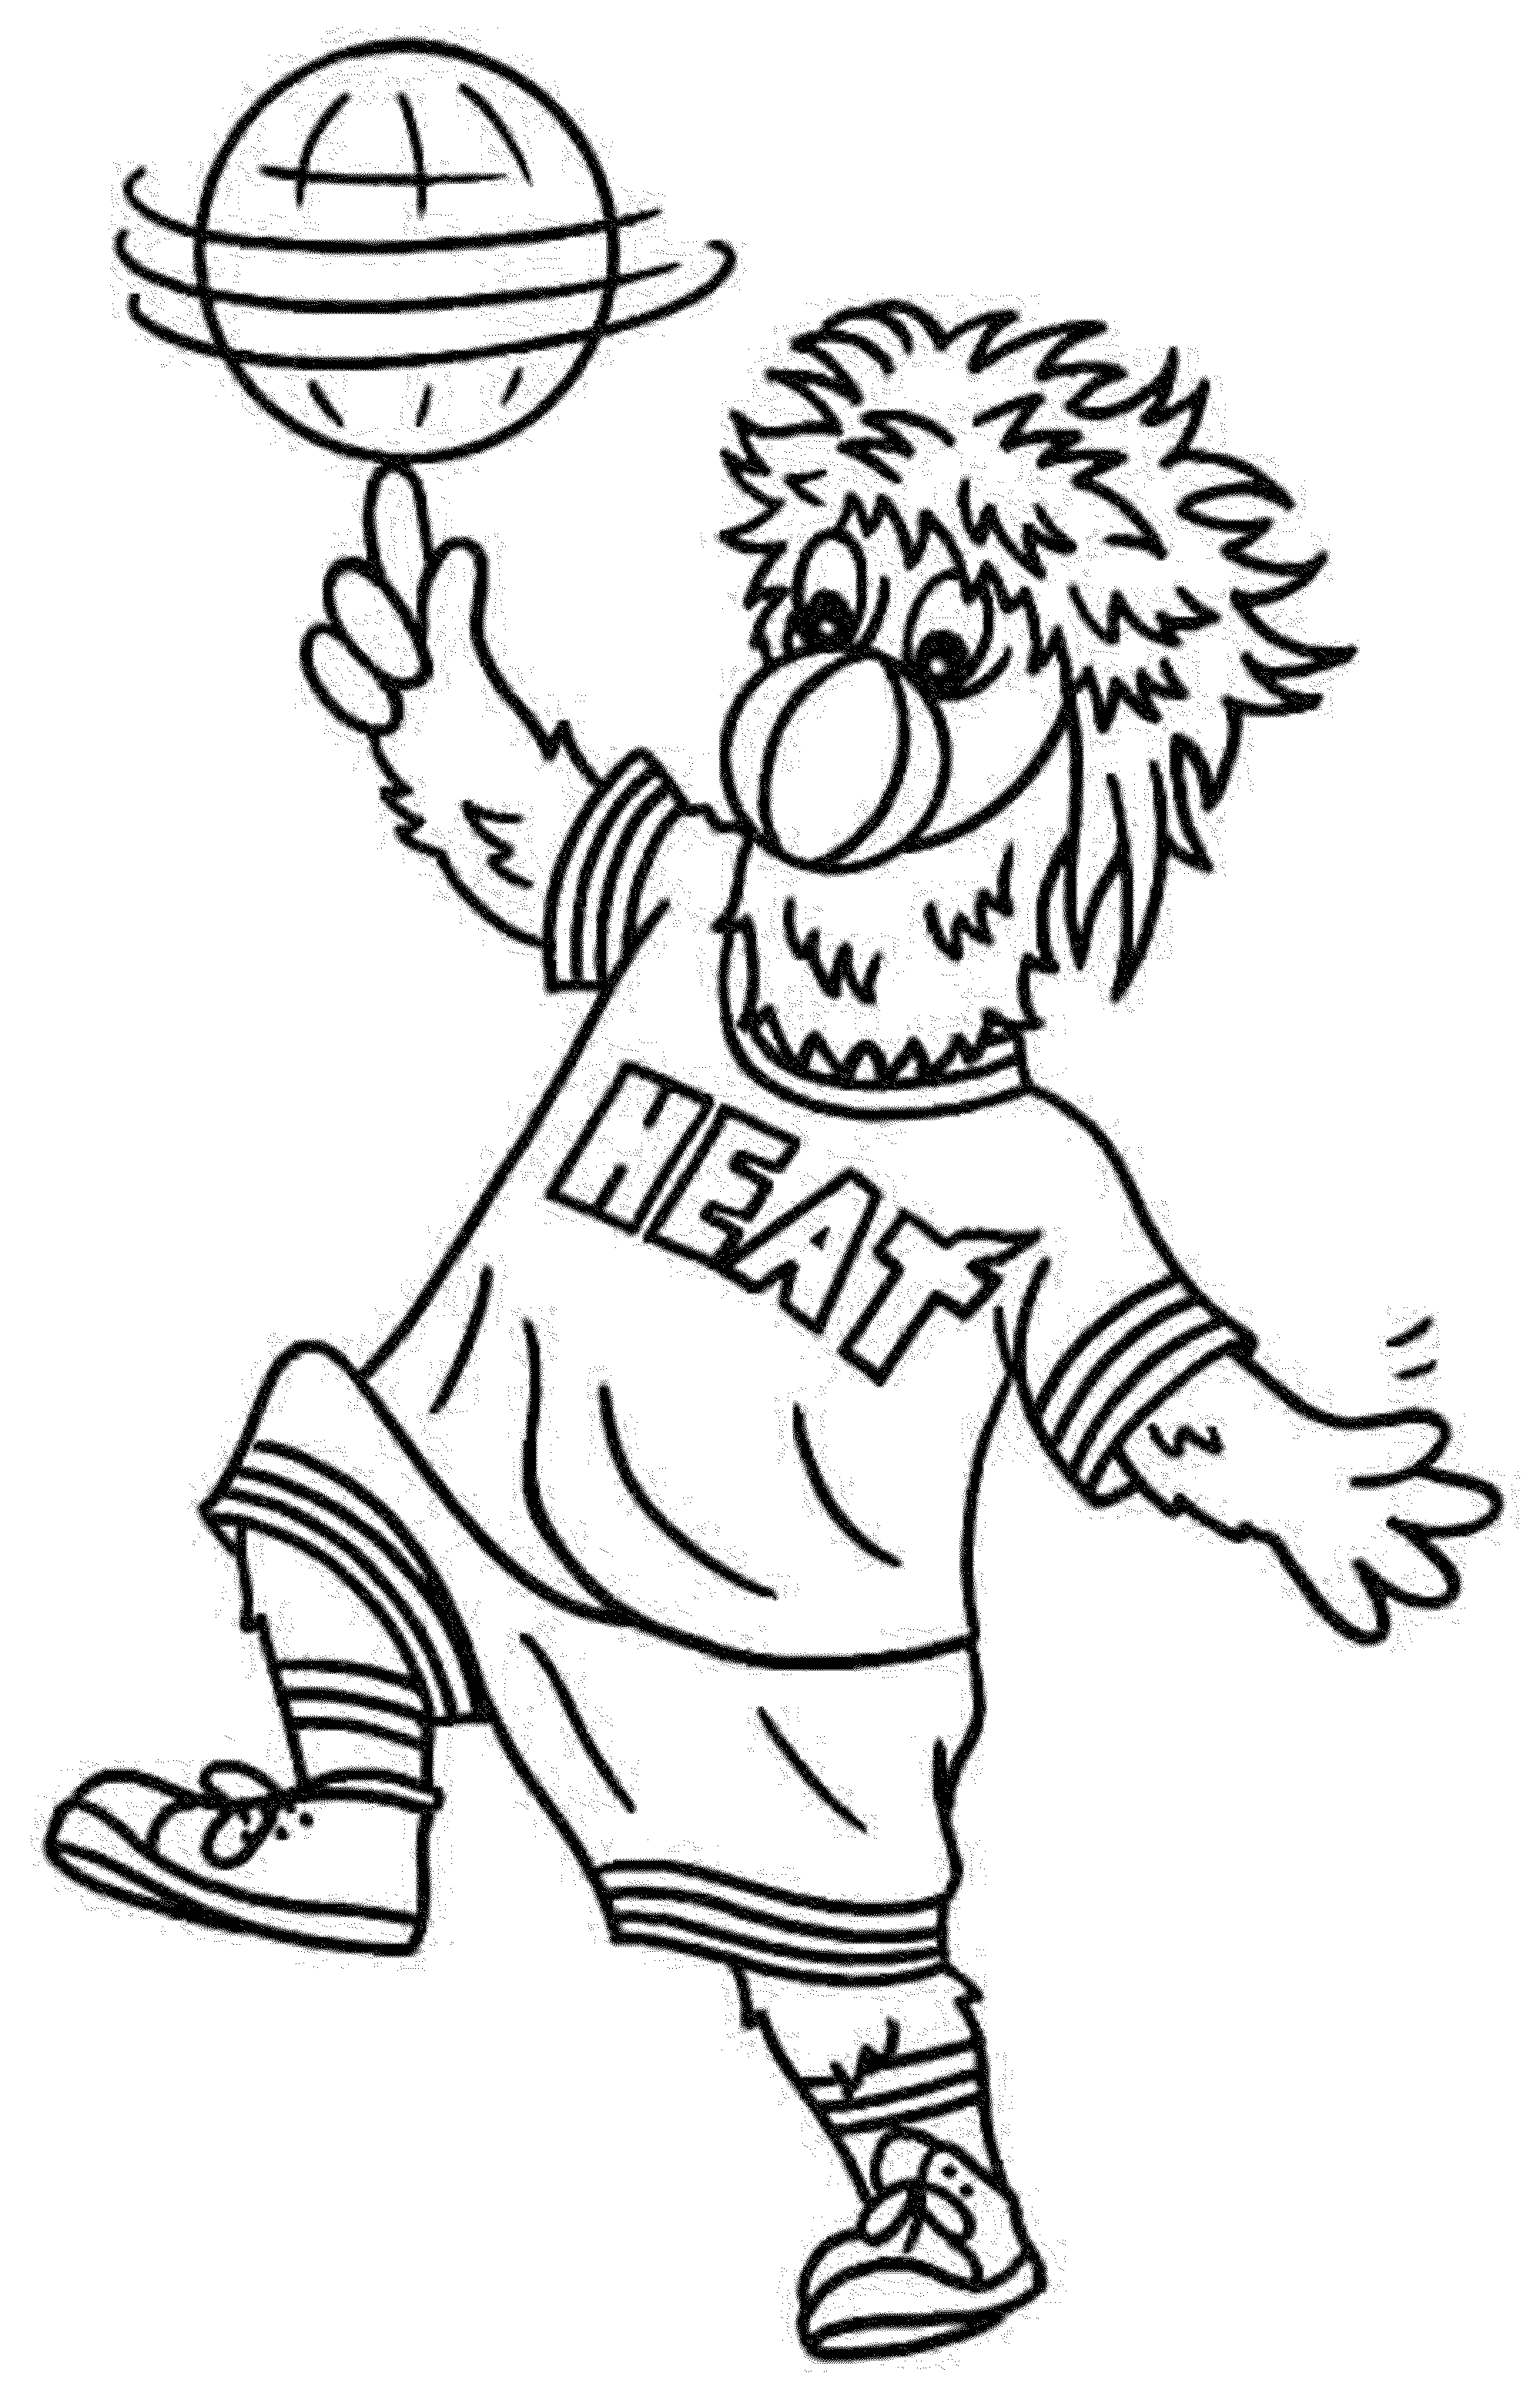 heat coloring pages | funny-basketball-coloring-pages | | BestAppsForKids.com